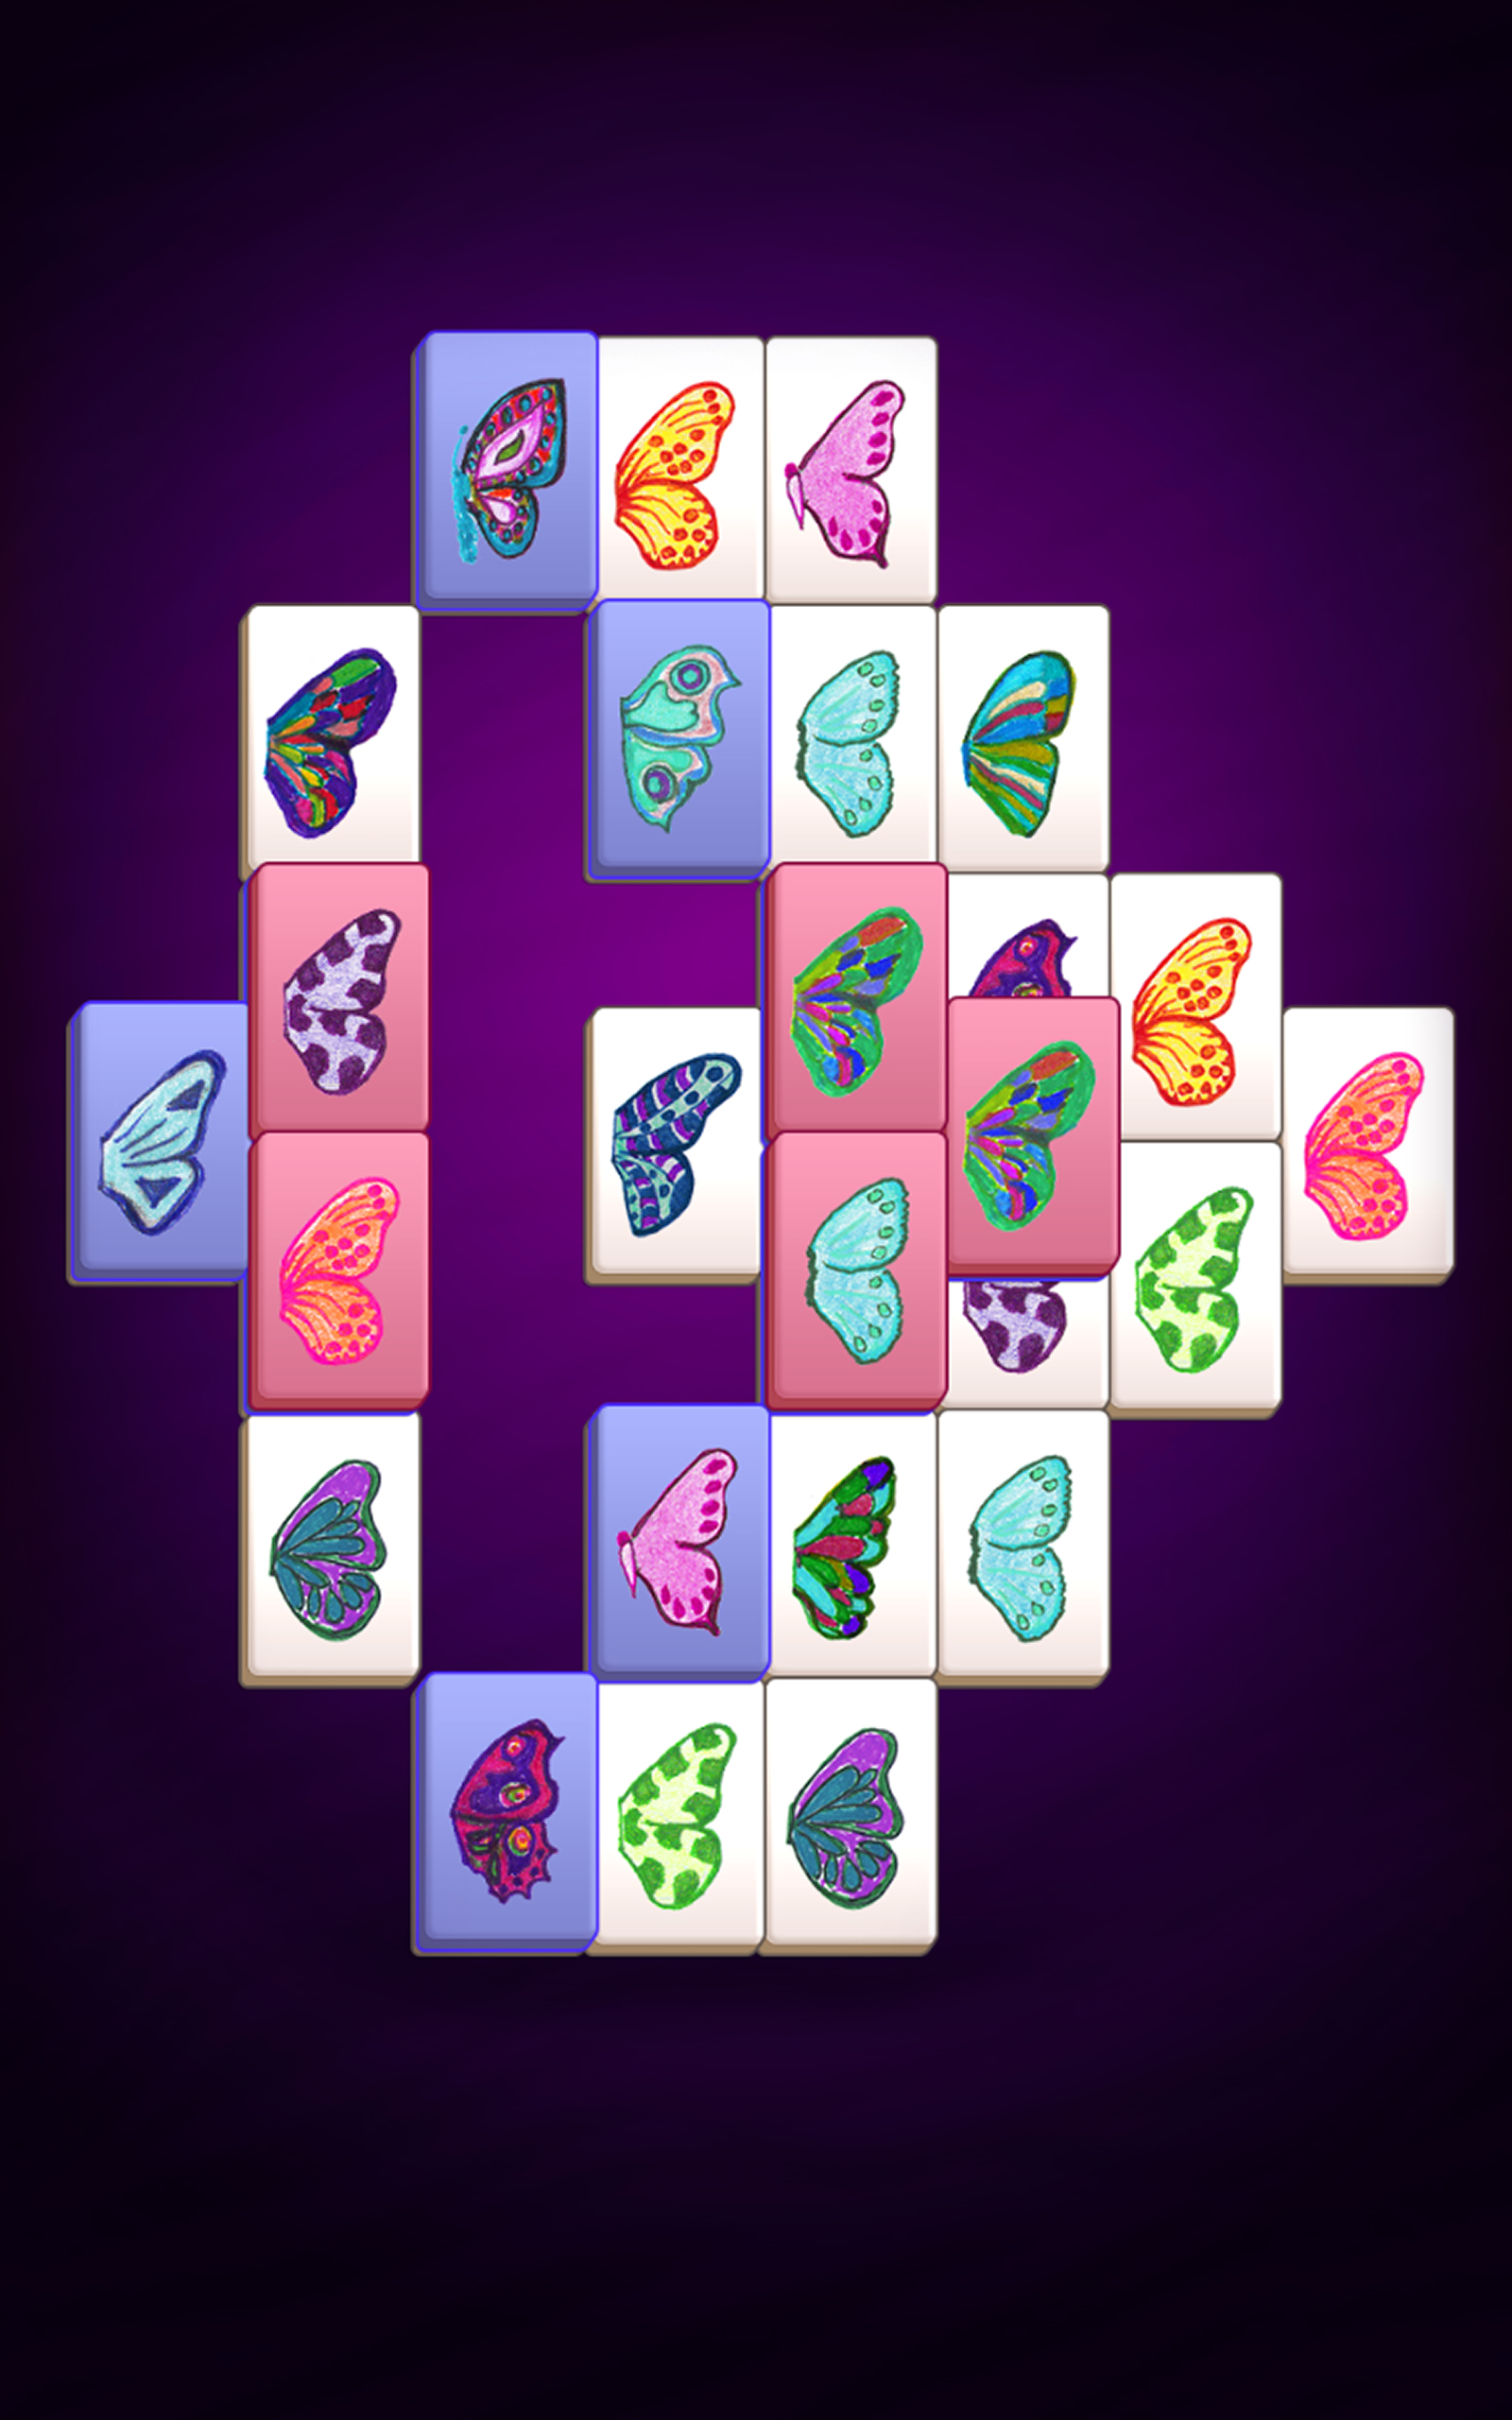 Butterfly Kyodai Full Screen - Play Free Games Online at